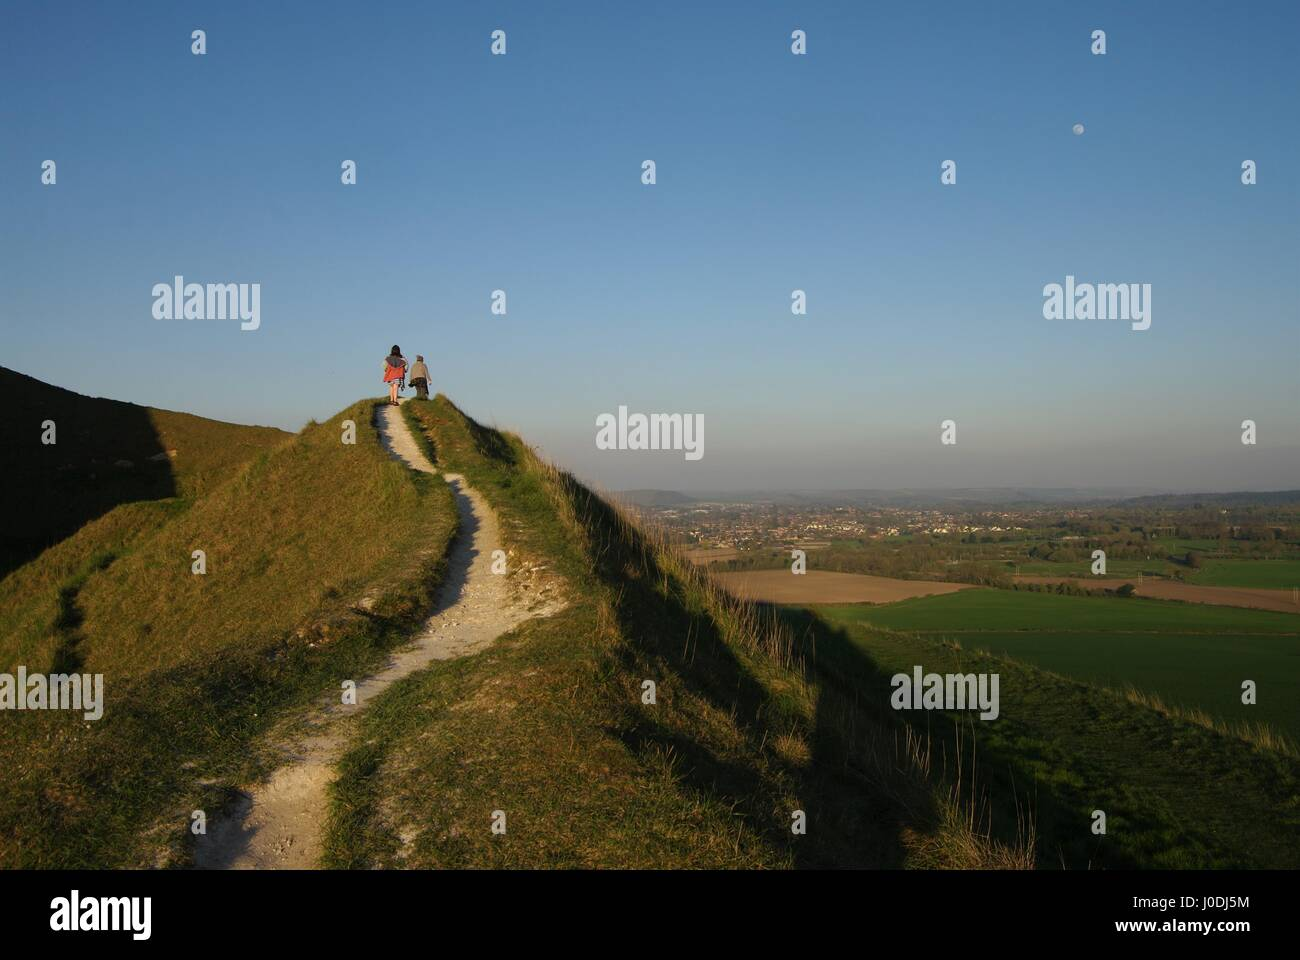 Cley Hill, Warminster, Wiltshire, England, UK - Stock Image